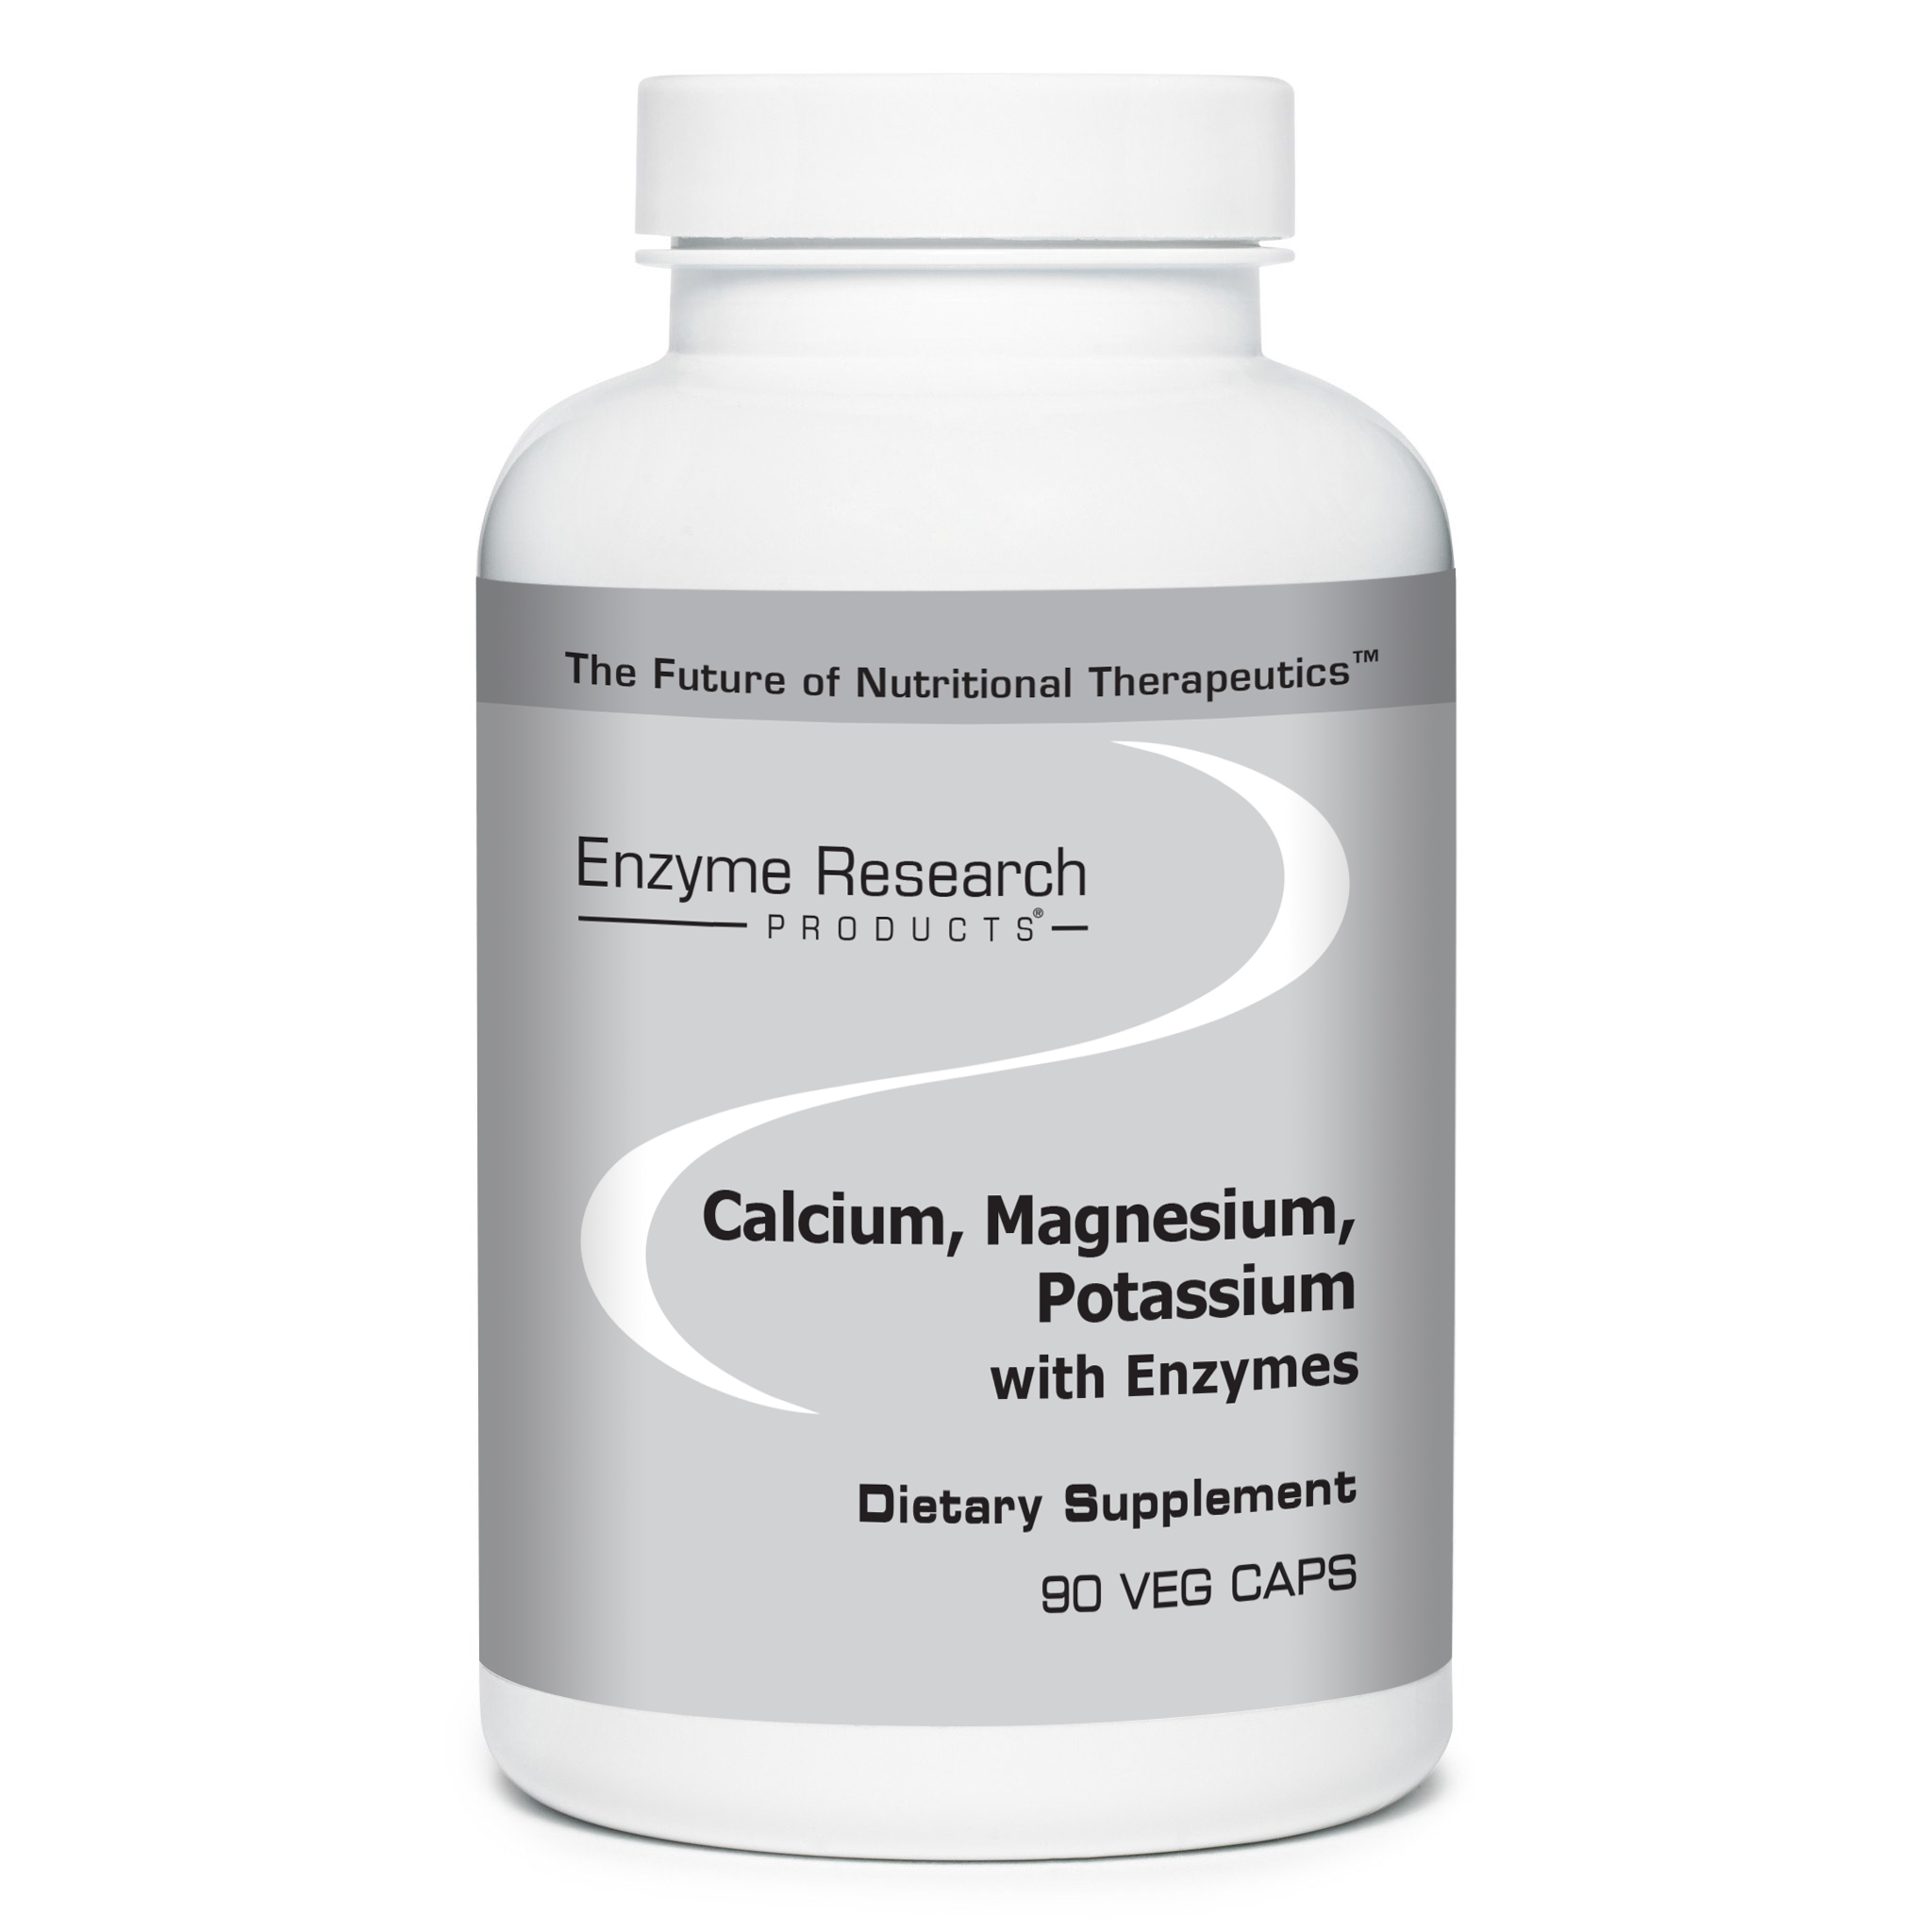 Enzyme Research Products | Calcium, Magnesium, Potassium